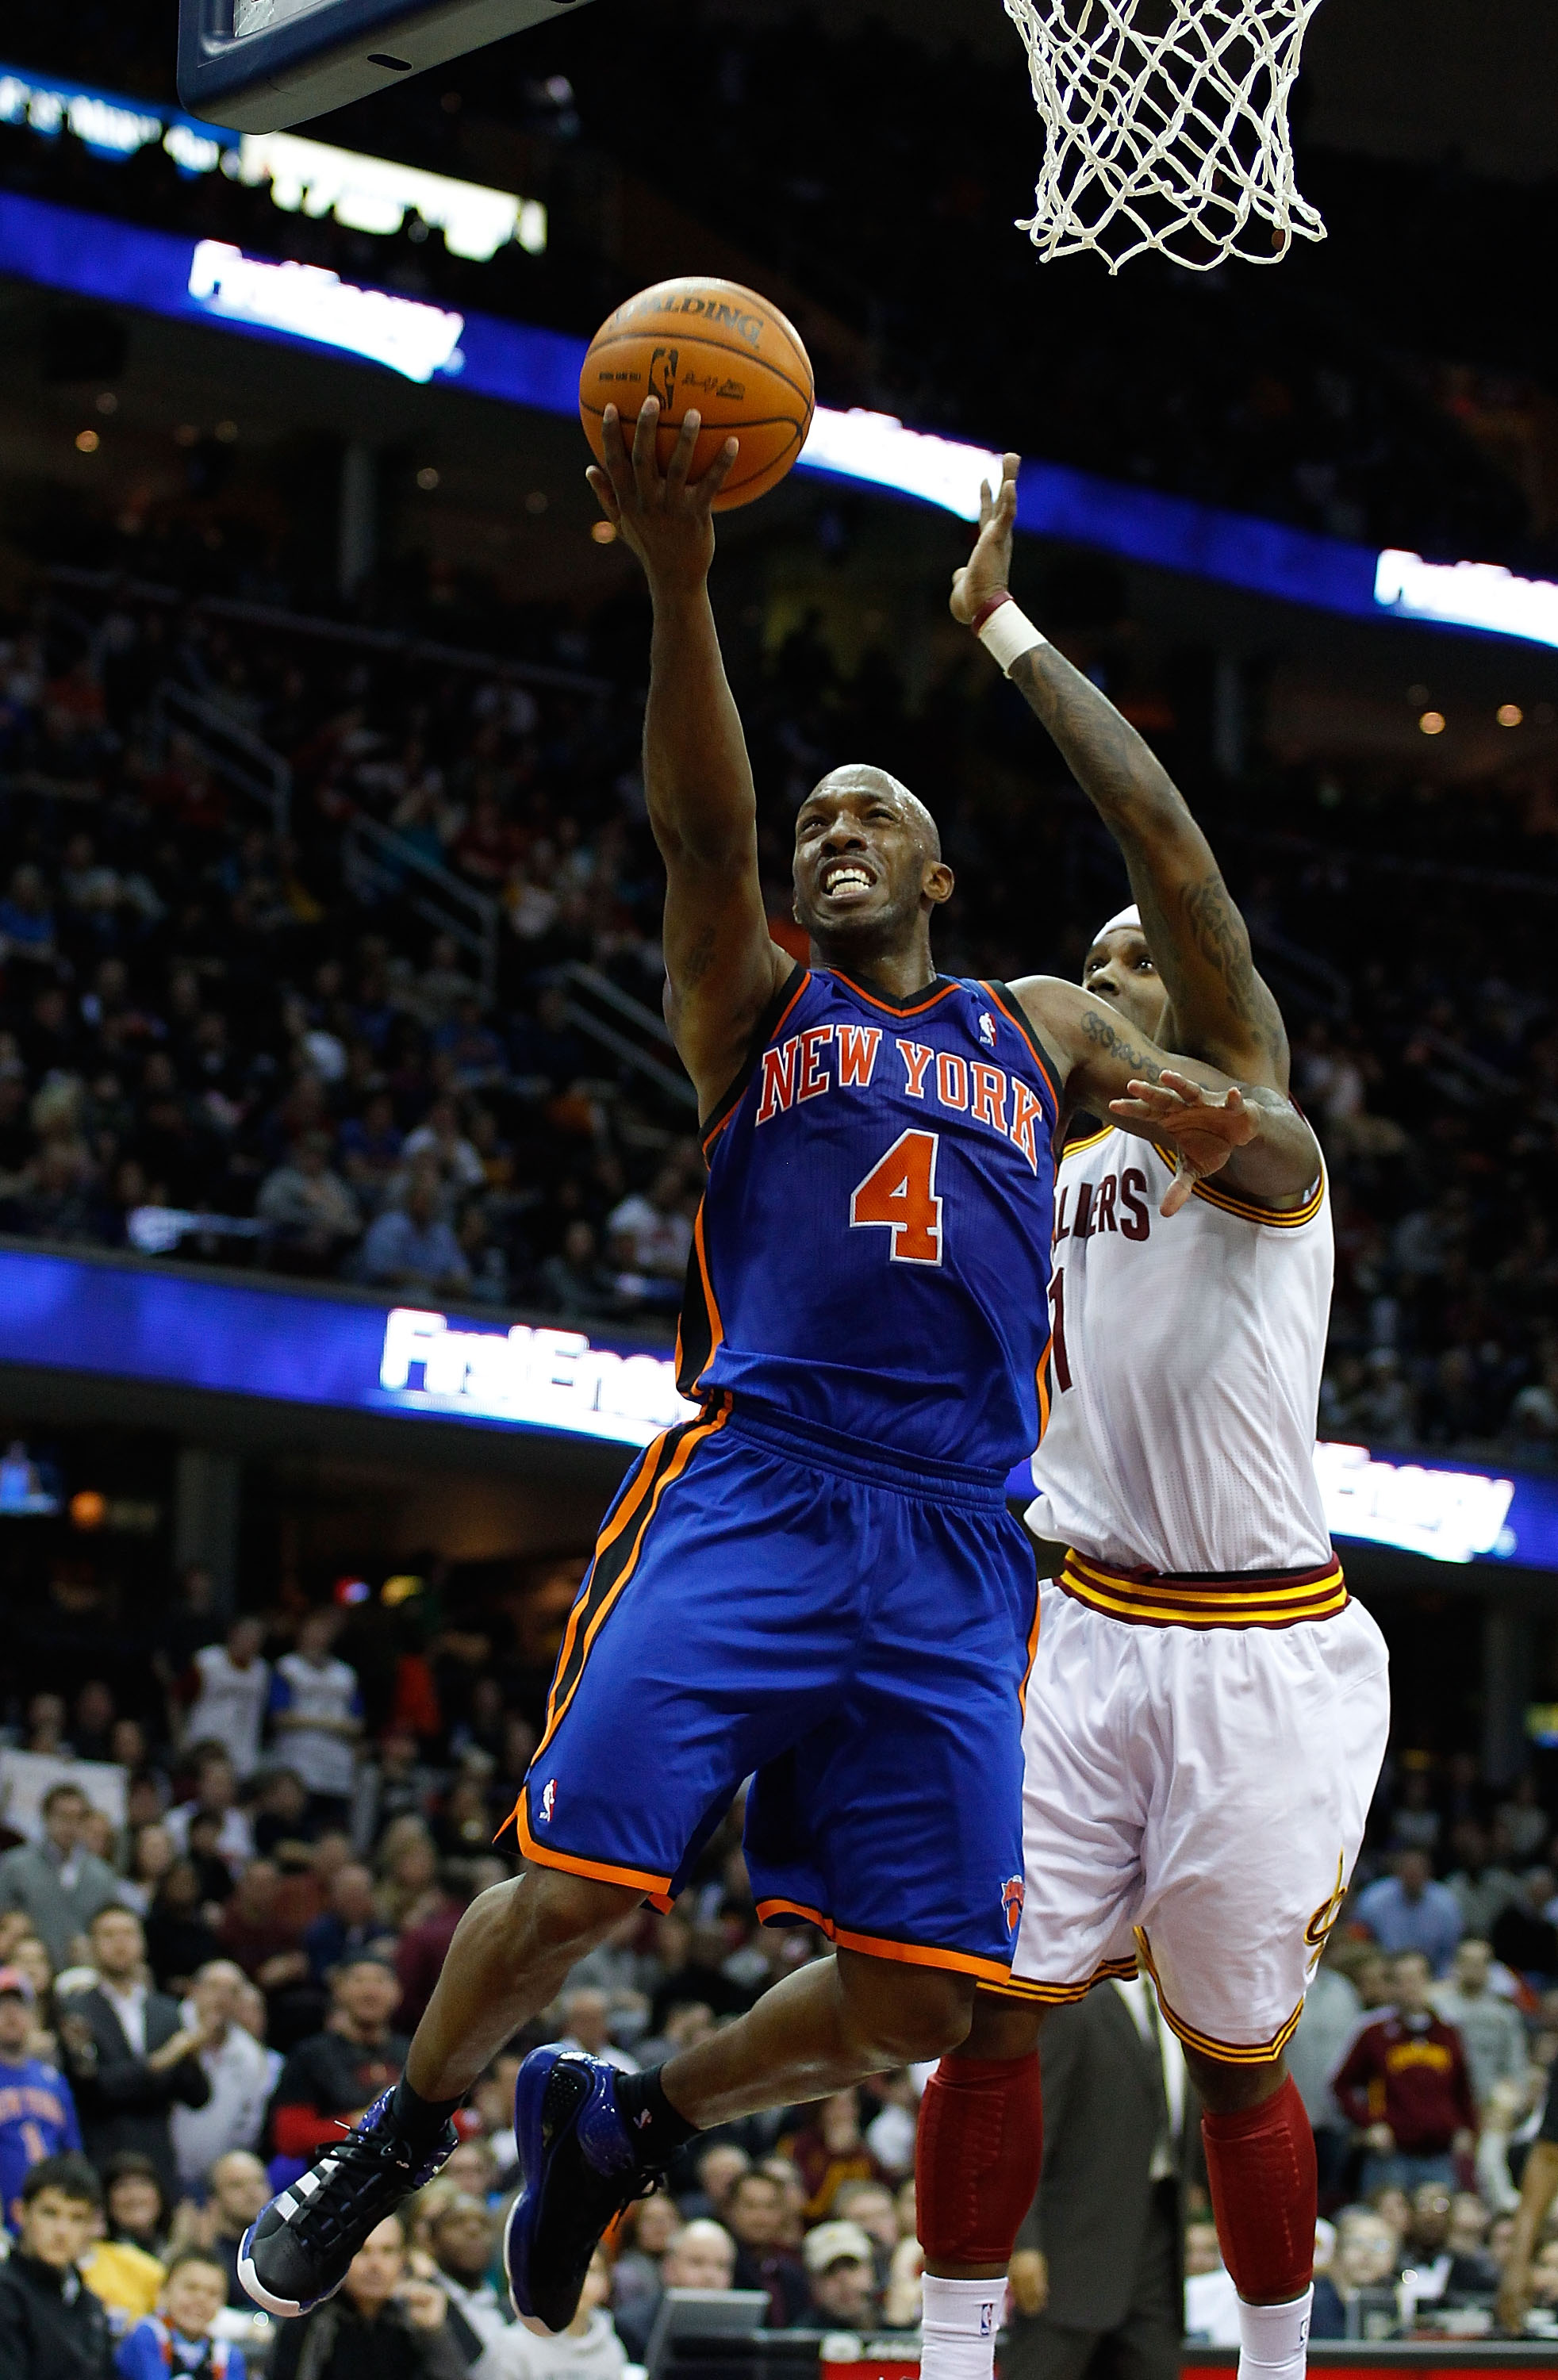 4b4550951 CLEVELAND - FEBRUARY 25  Chauncey Billups  4 of the New York Knicks drives  to